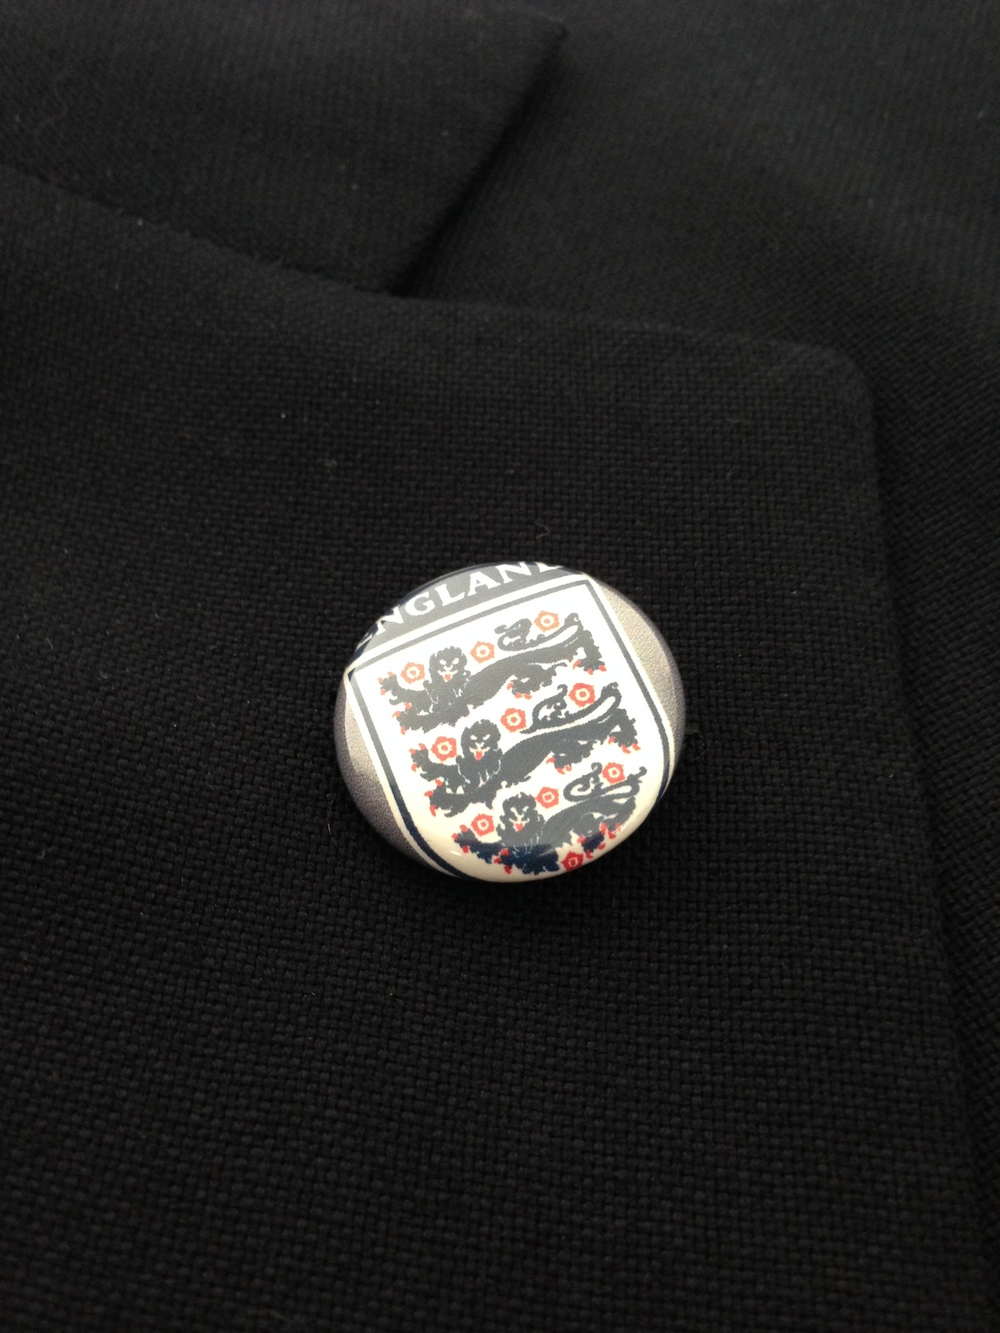 A lapel pin never looked so good.